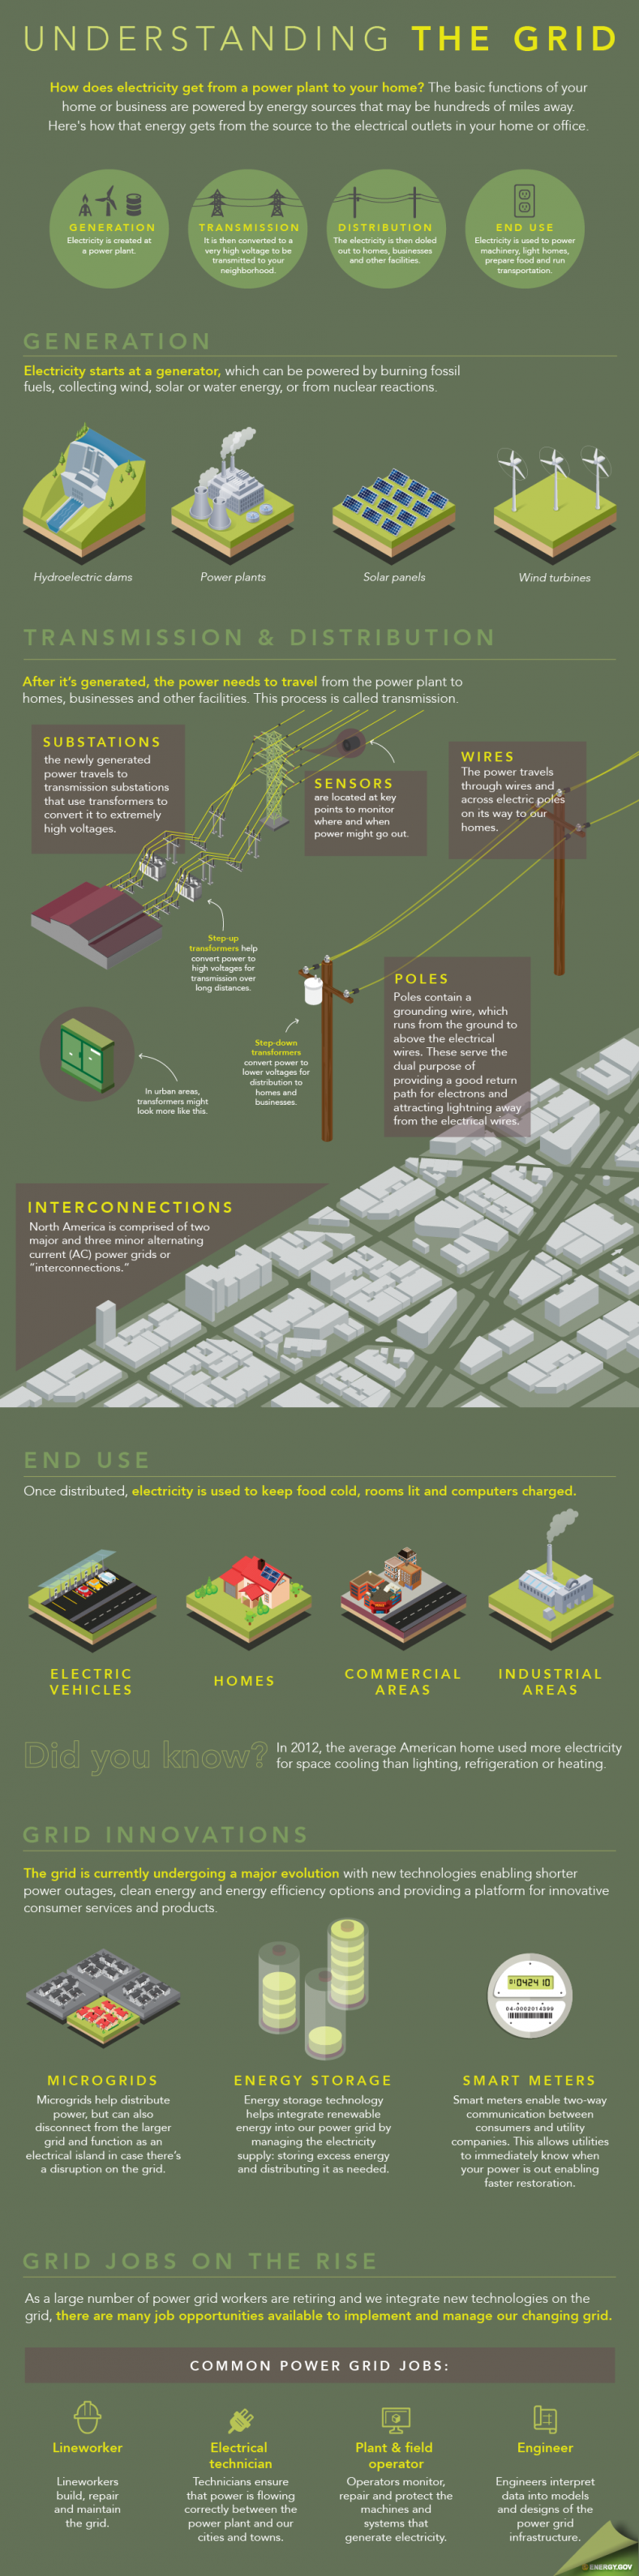 Understanding the Grid infographic energy